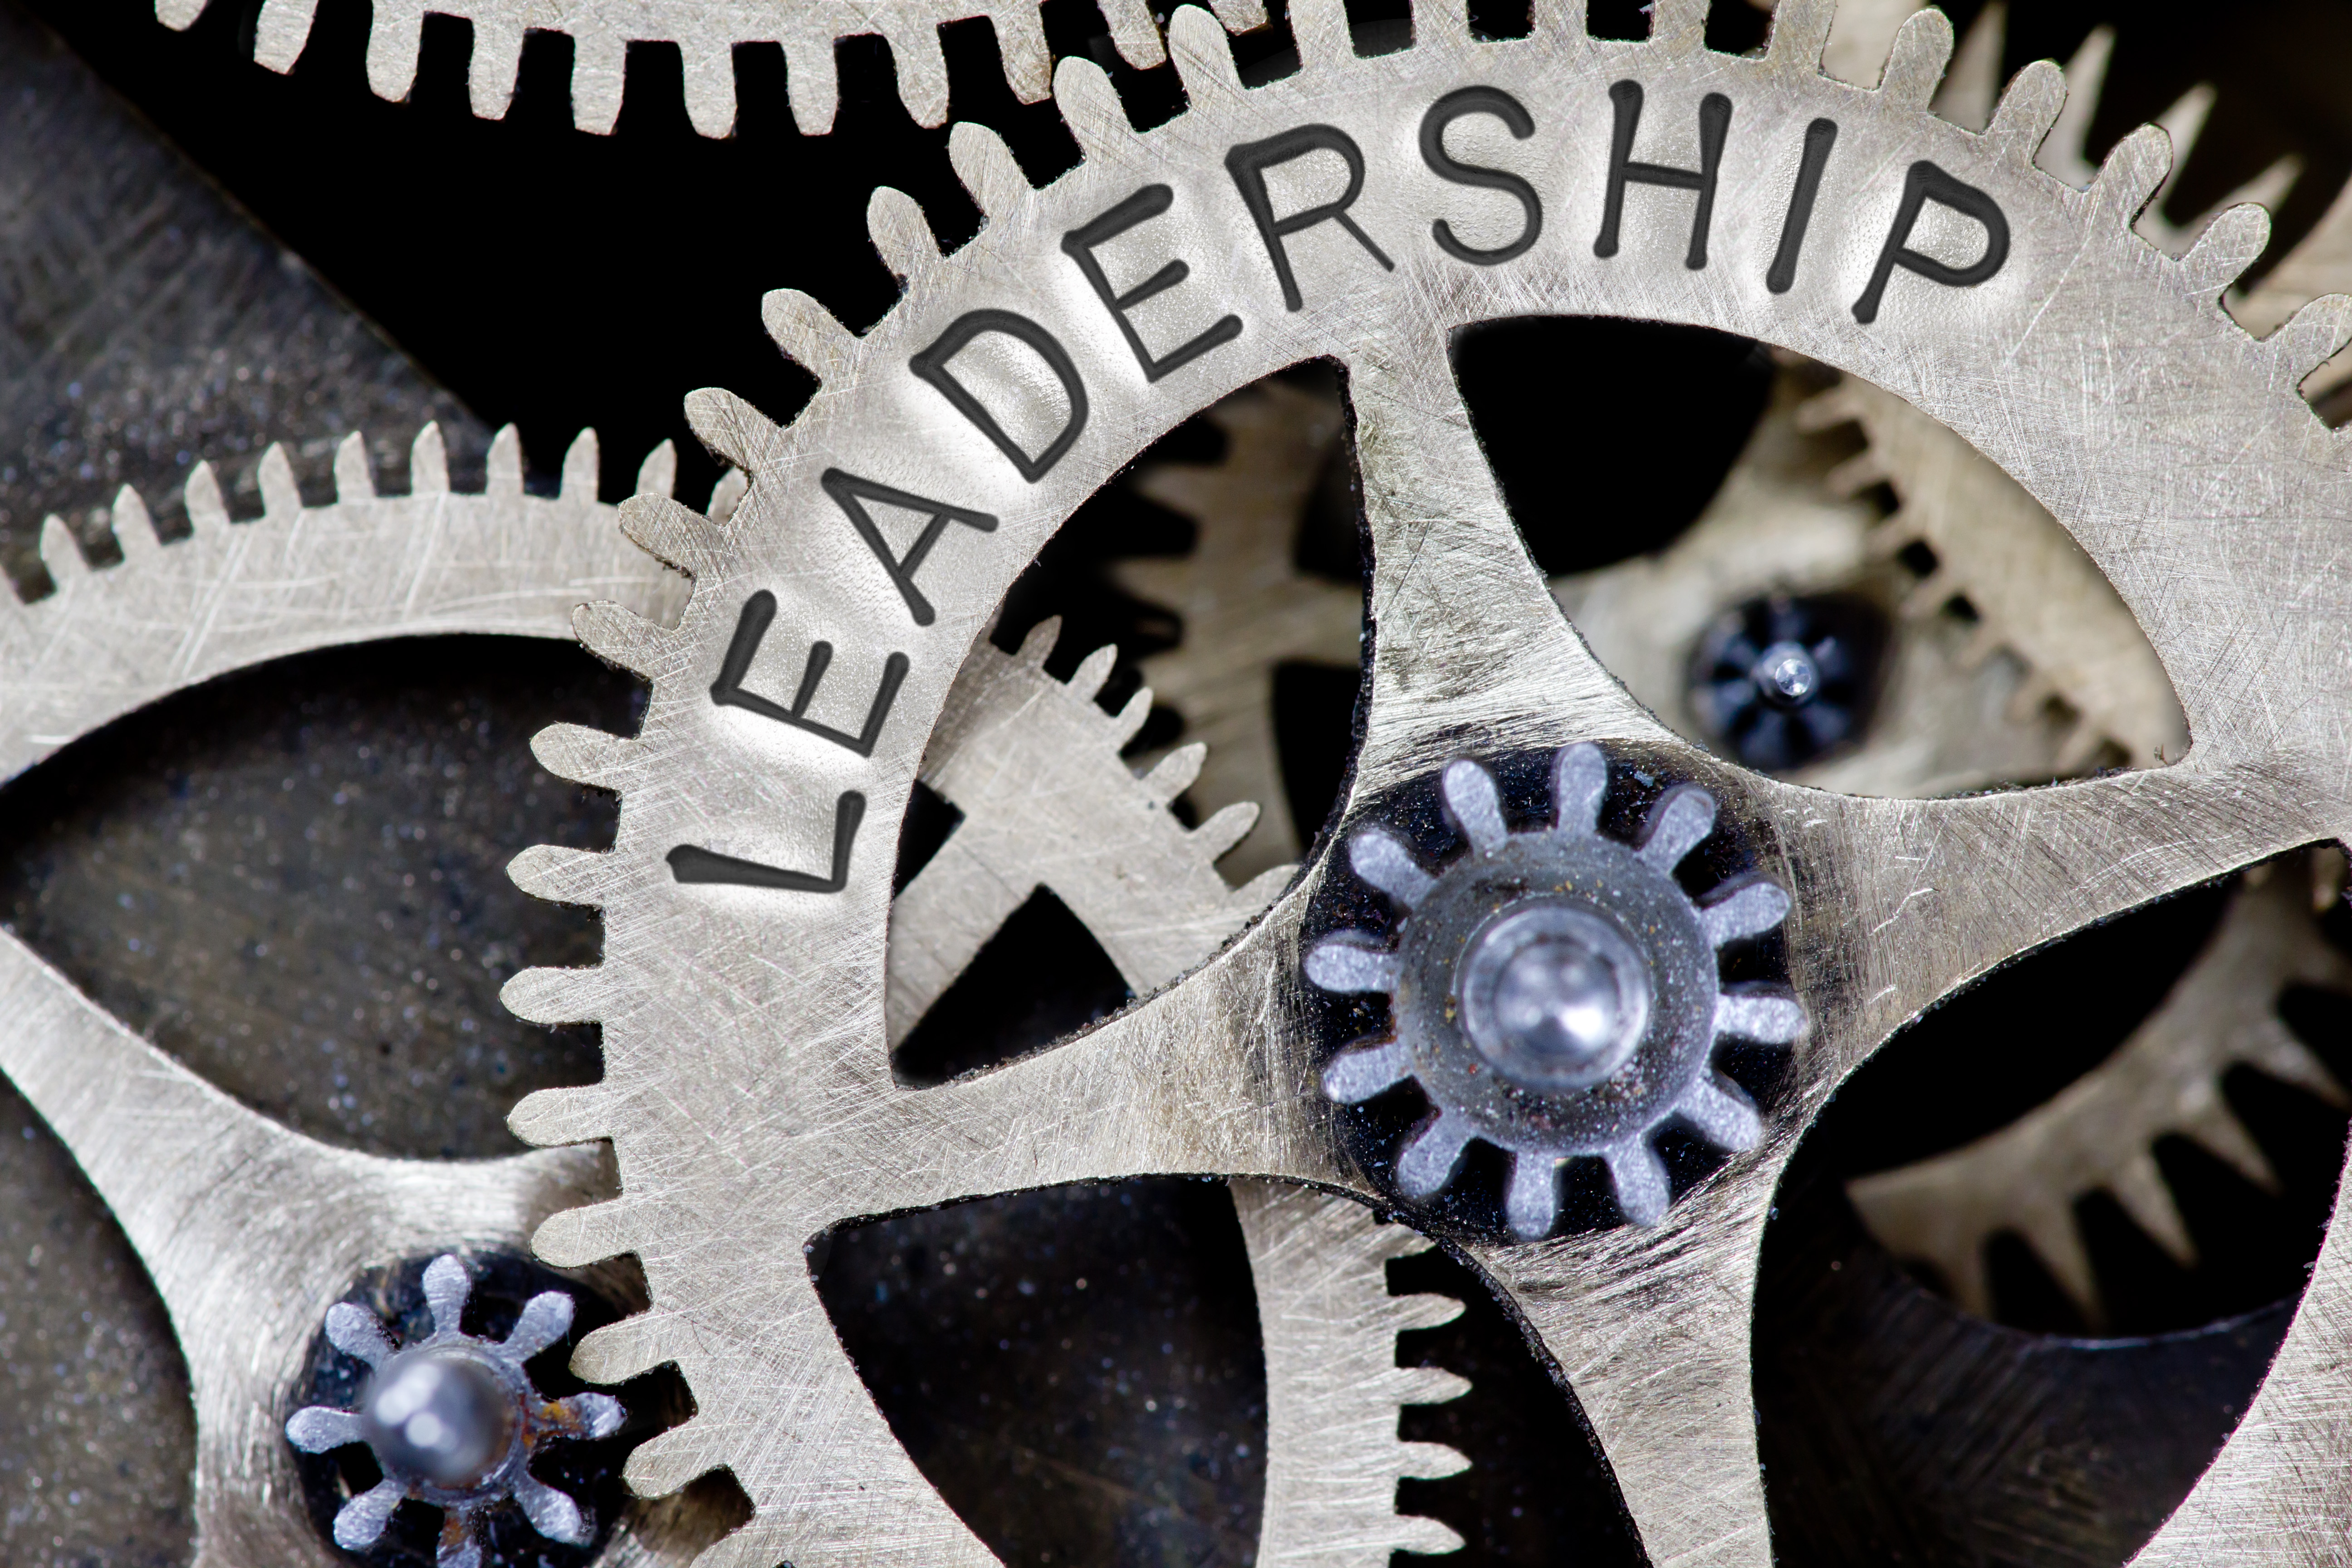 What Makes a Great Leader During a Time of Crisis